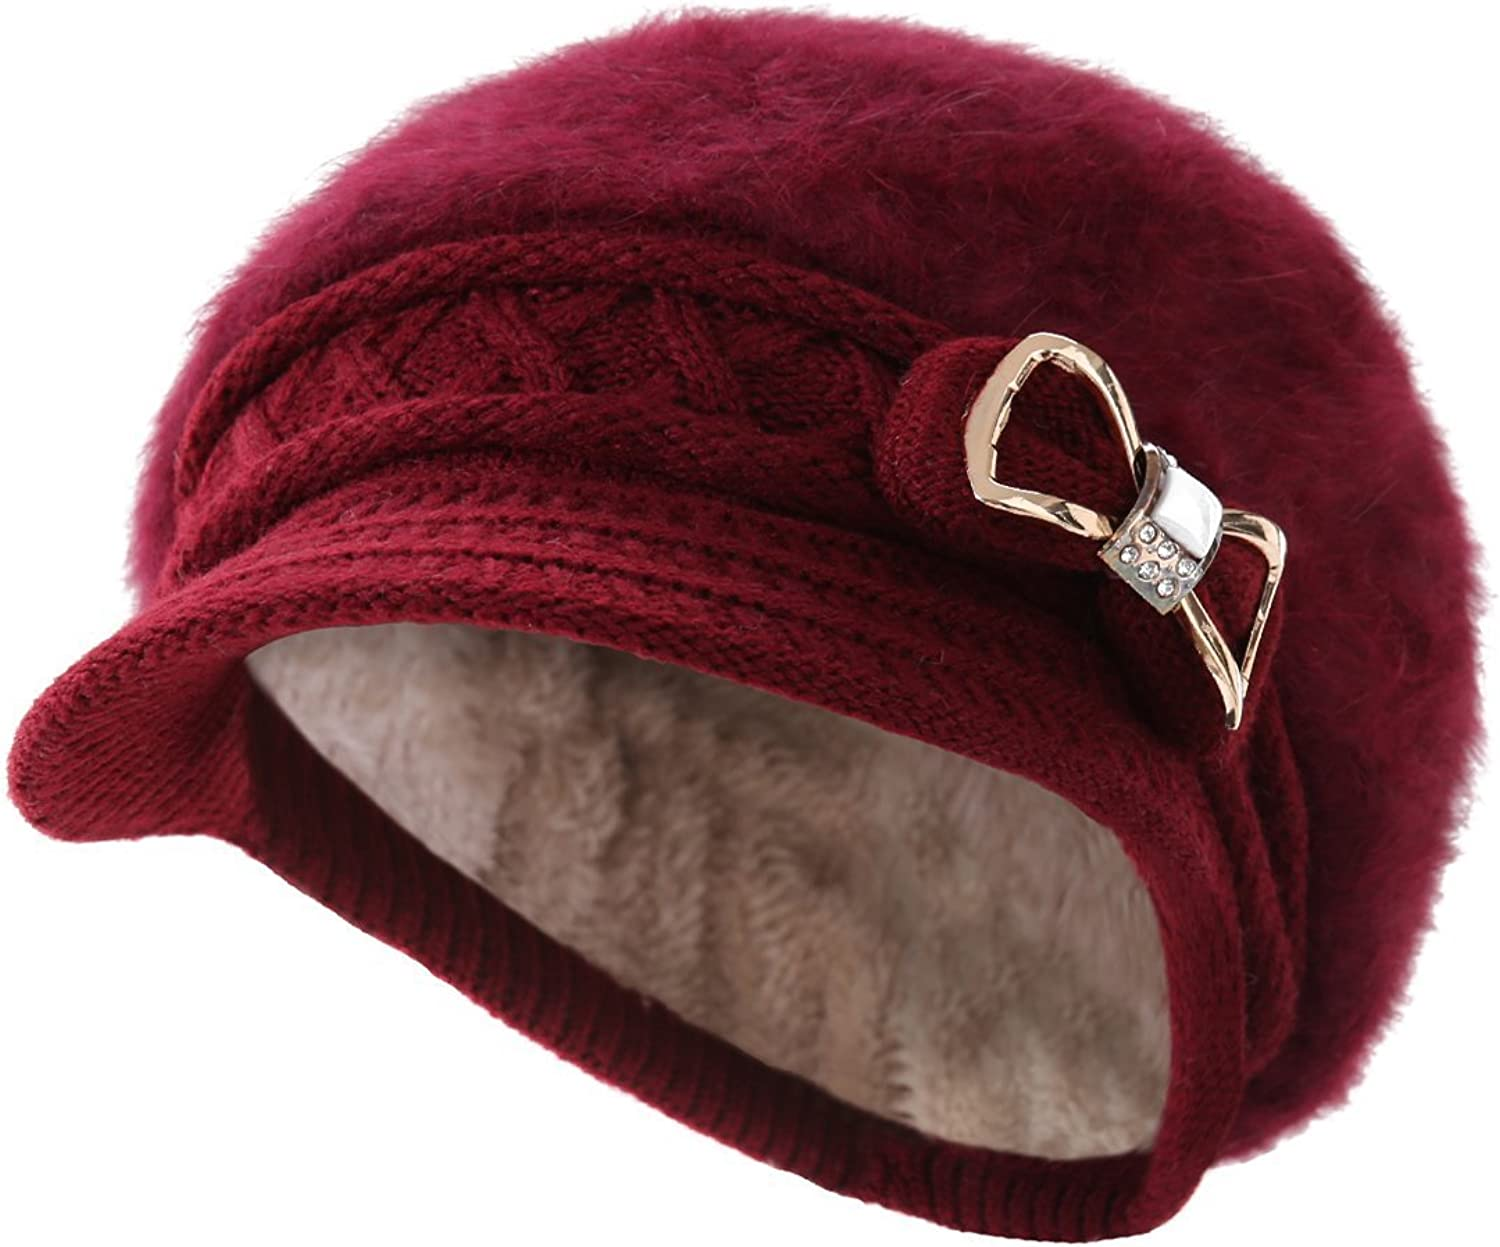 Surbluee Lady Crystal Bow Warm Cabled Angora Knit Winter Beanie Crochet Beret Hats Newsboy Caps